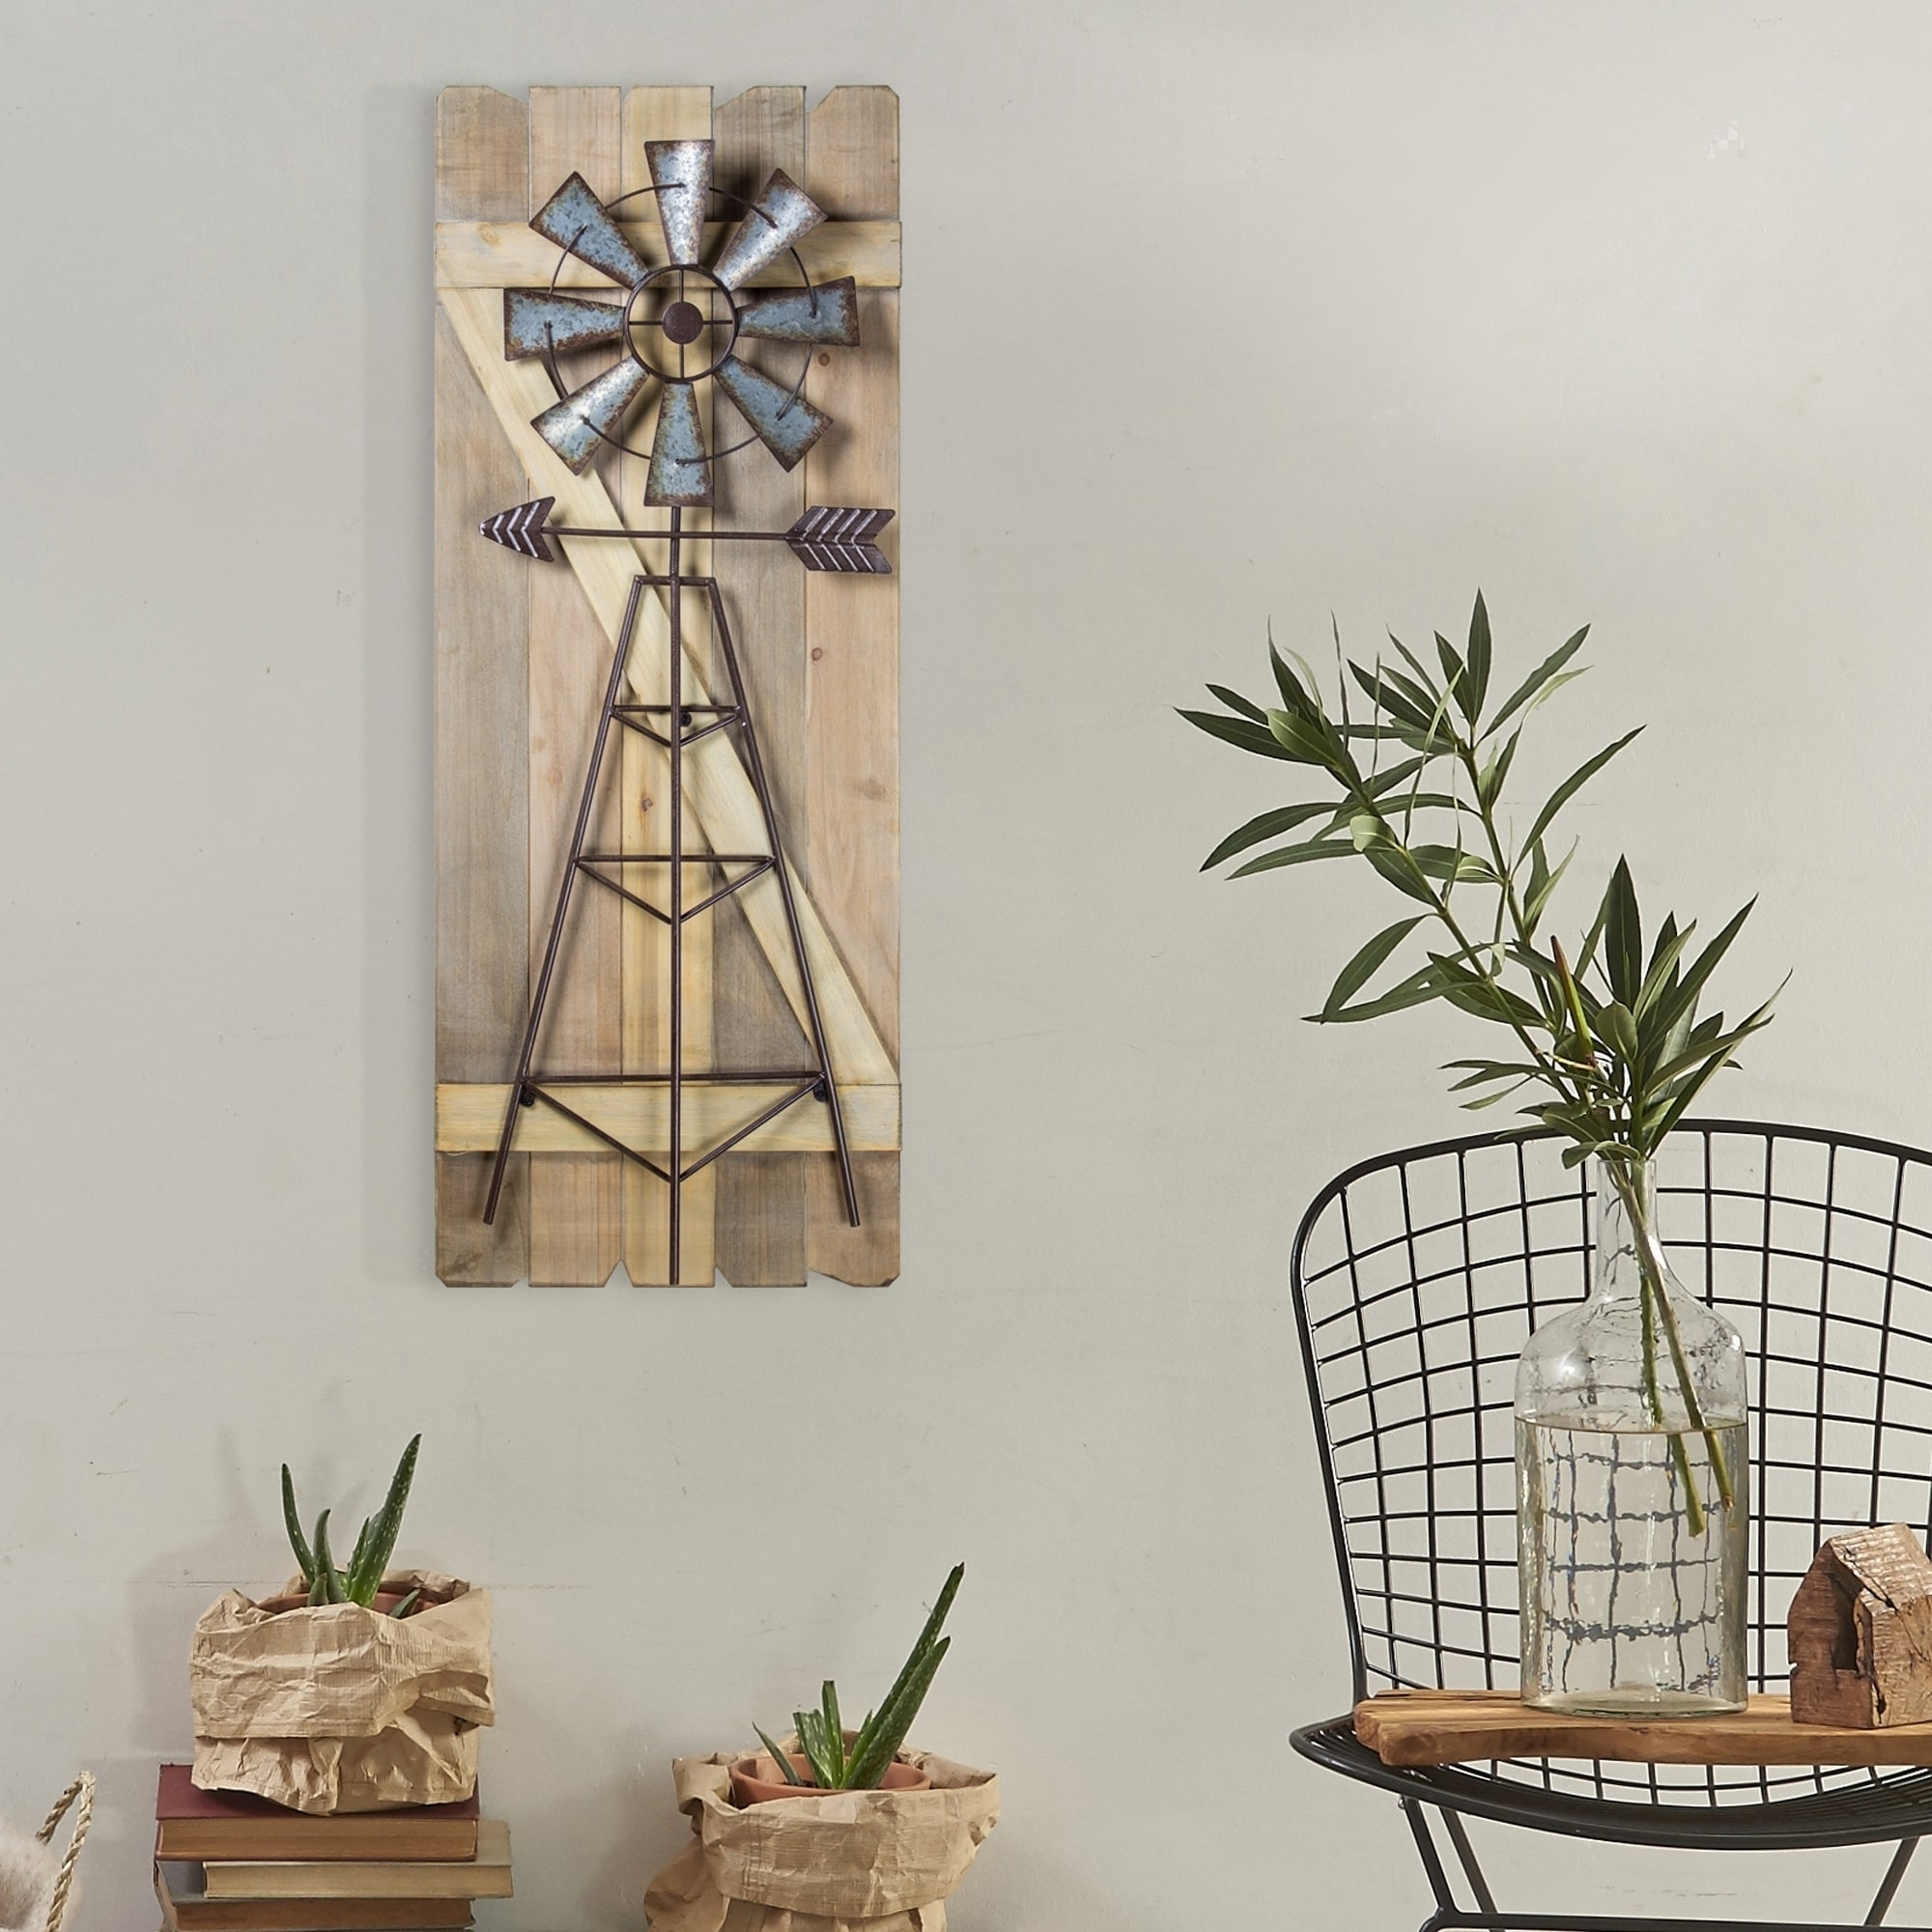 Most Current Magnificent Metal Windmill Wall Decor Crest Wall Art Ideas Throughout Windmill Wall Art (View 12 of 15)